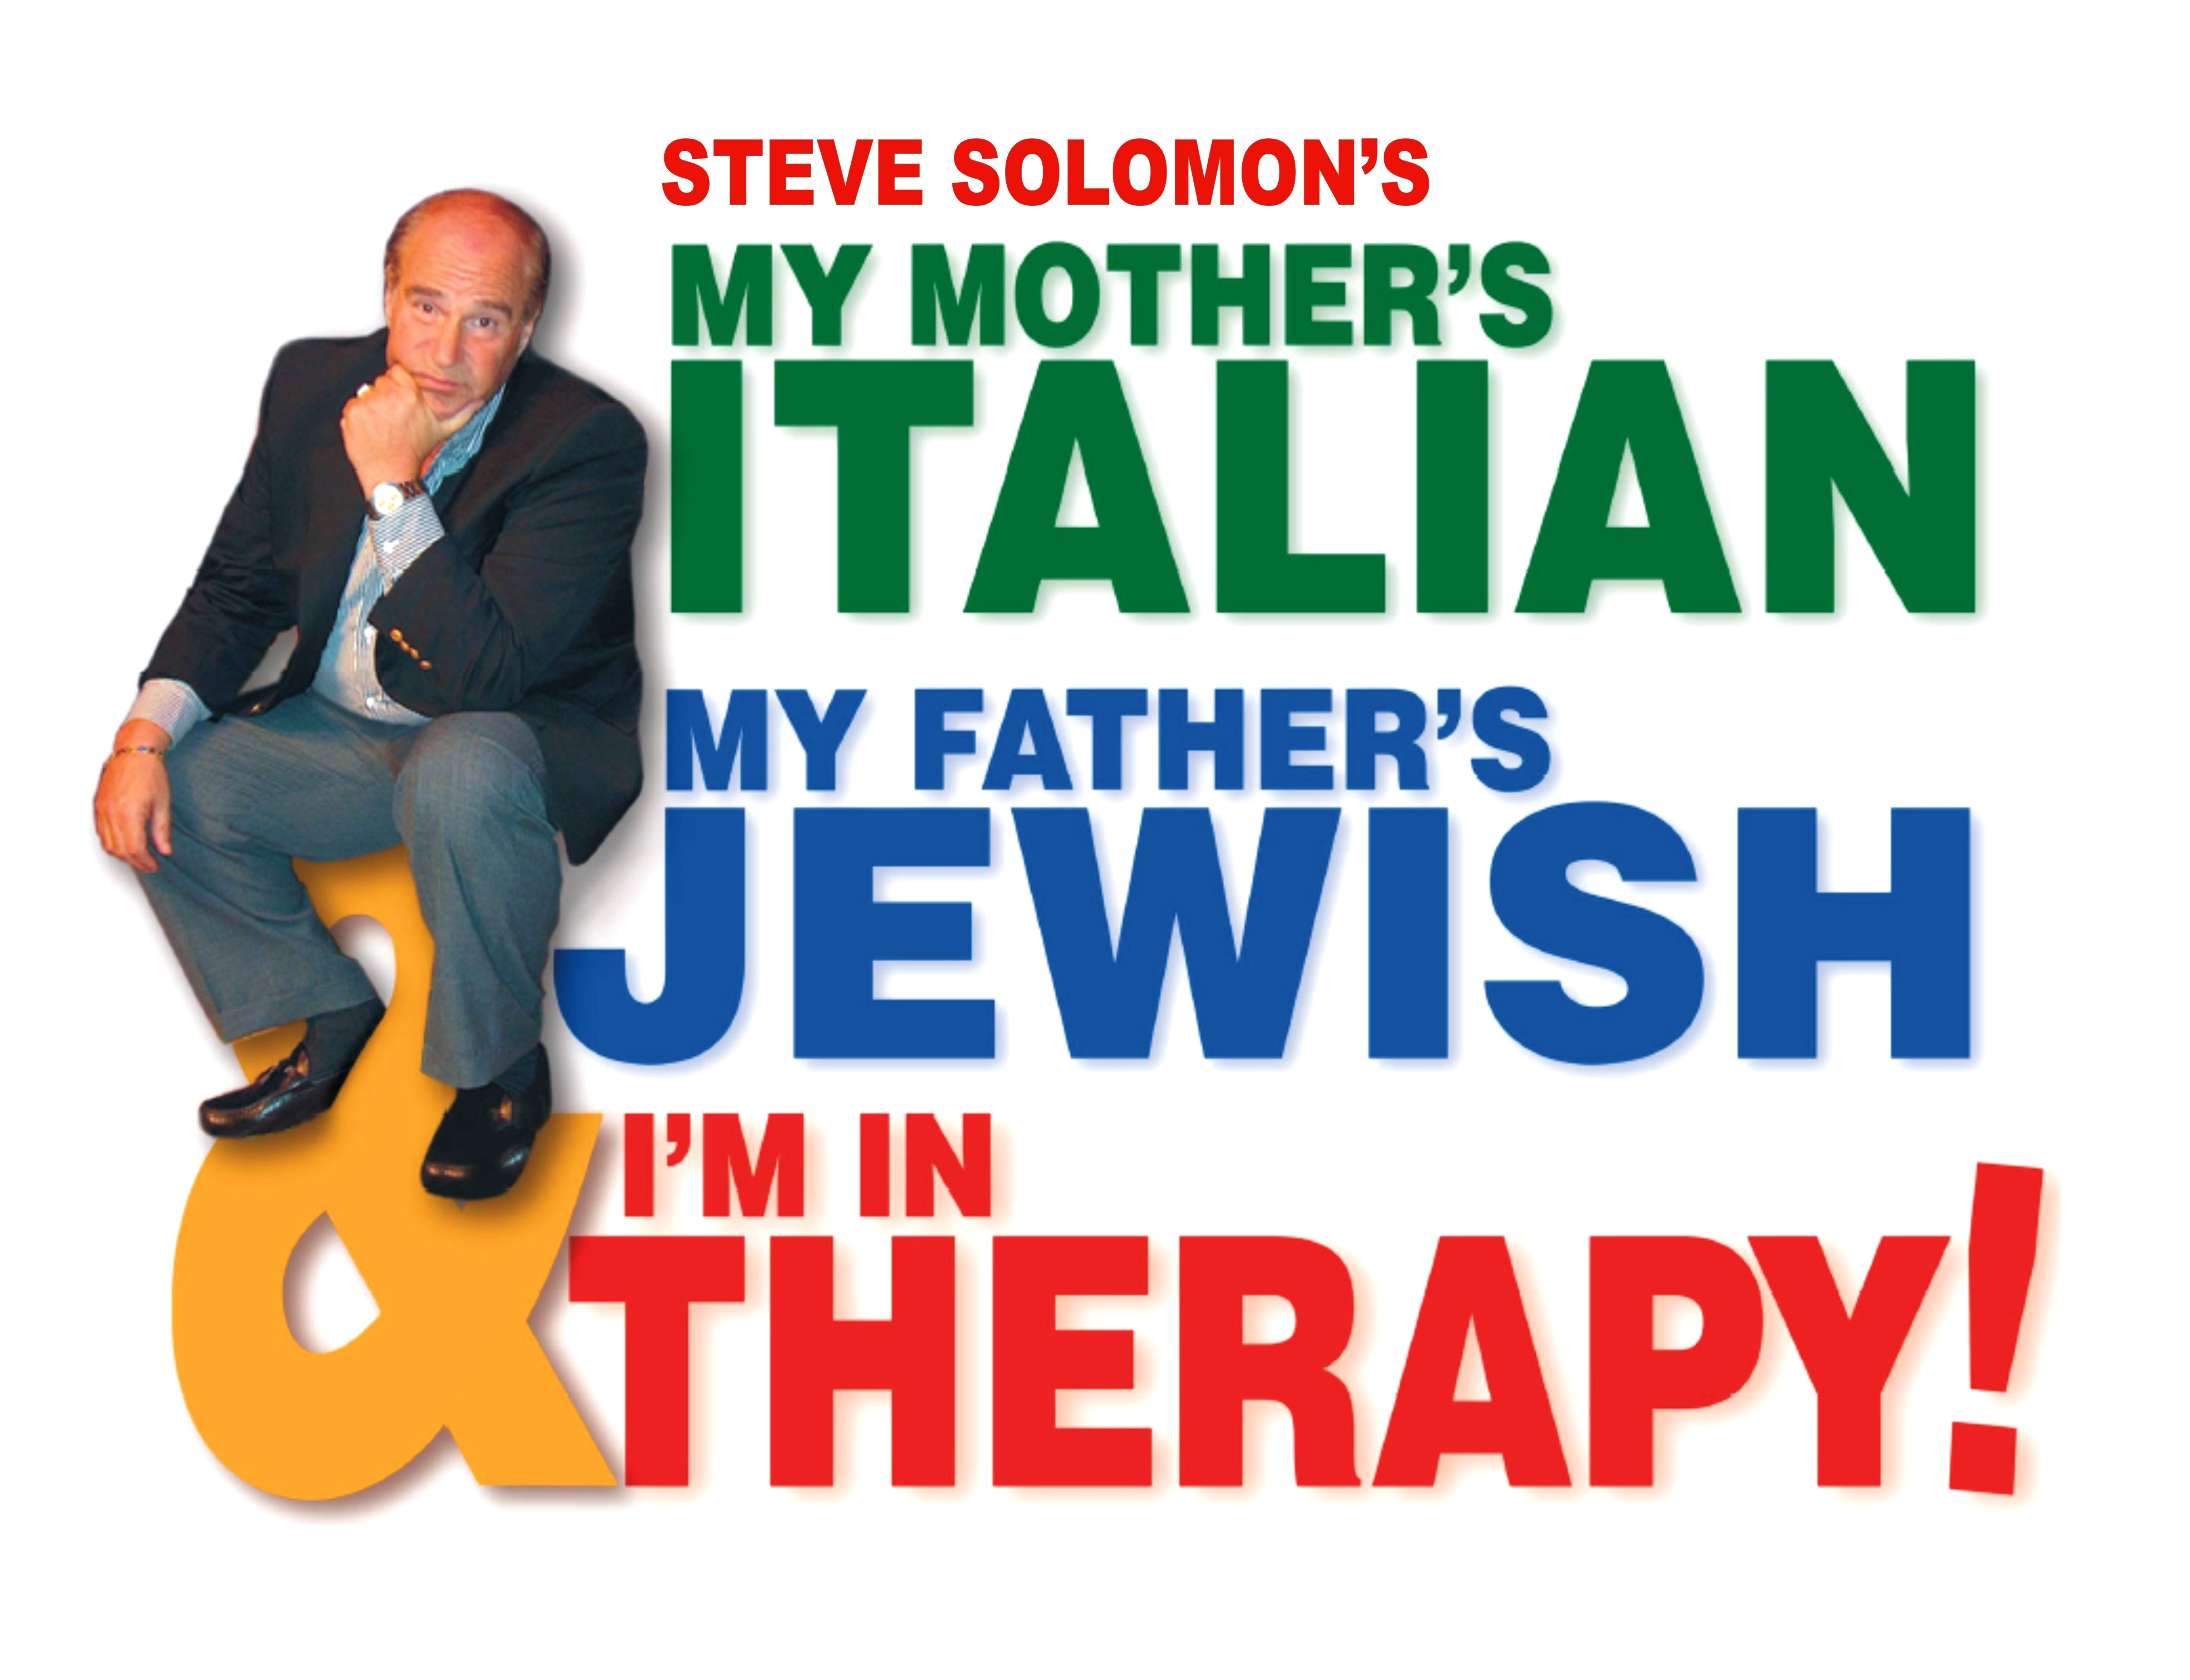 My Mother is Italian, My Father is Jewish, and I'm in Therapy